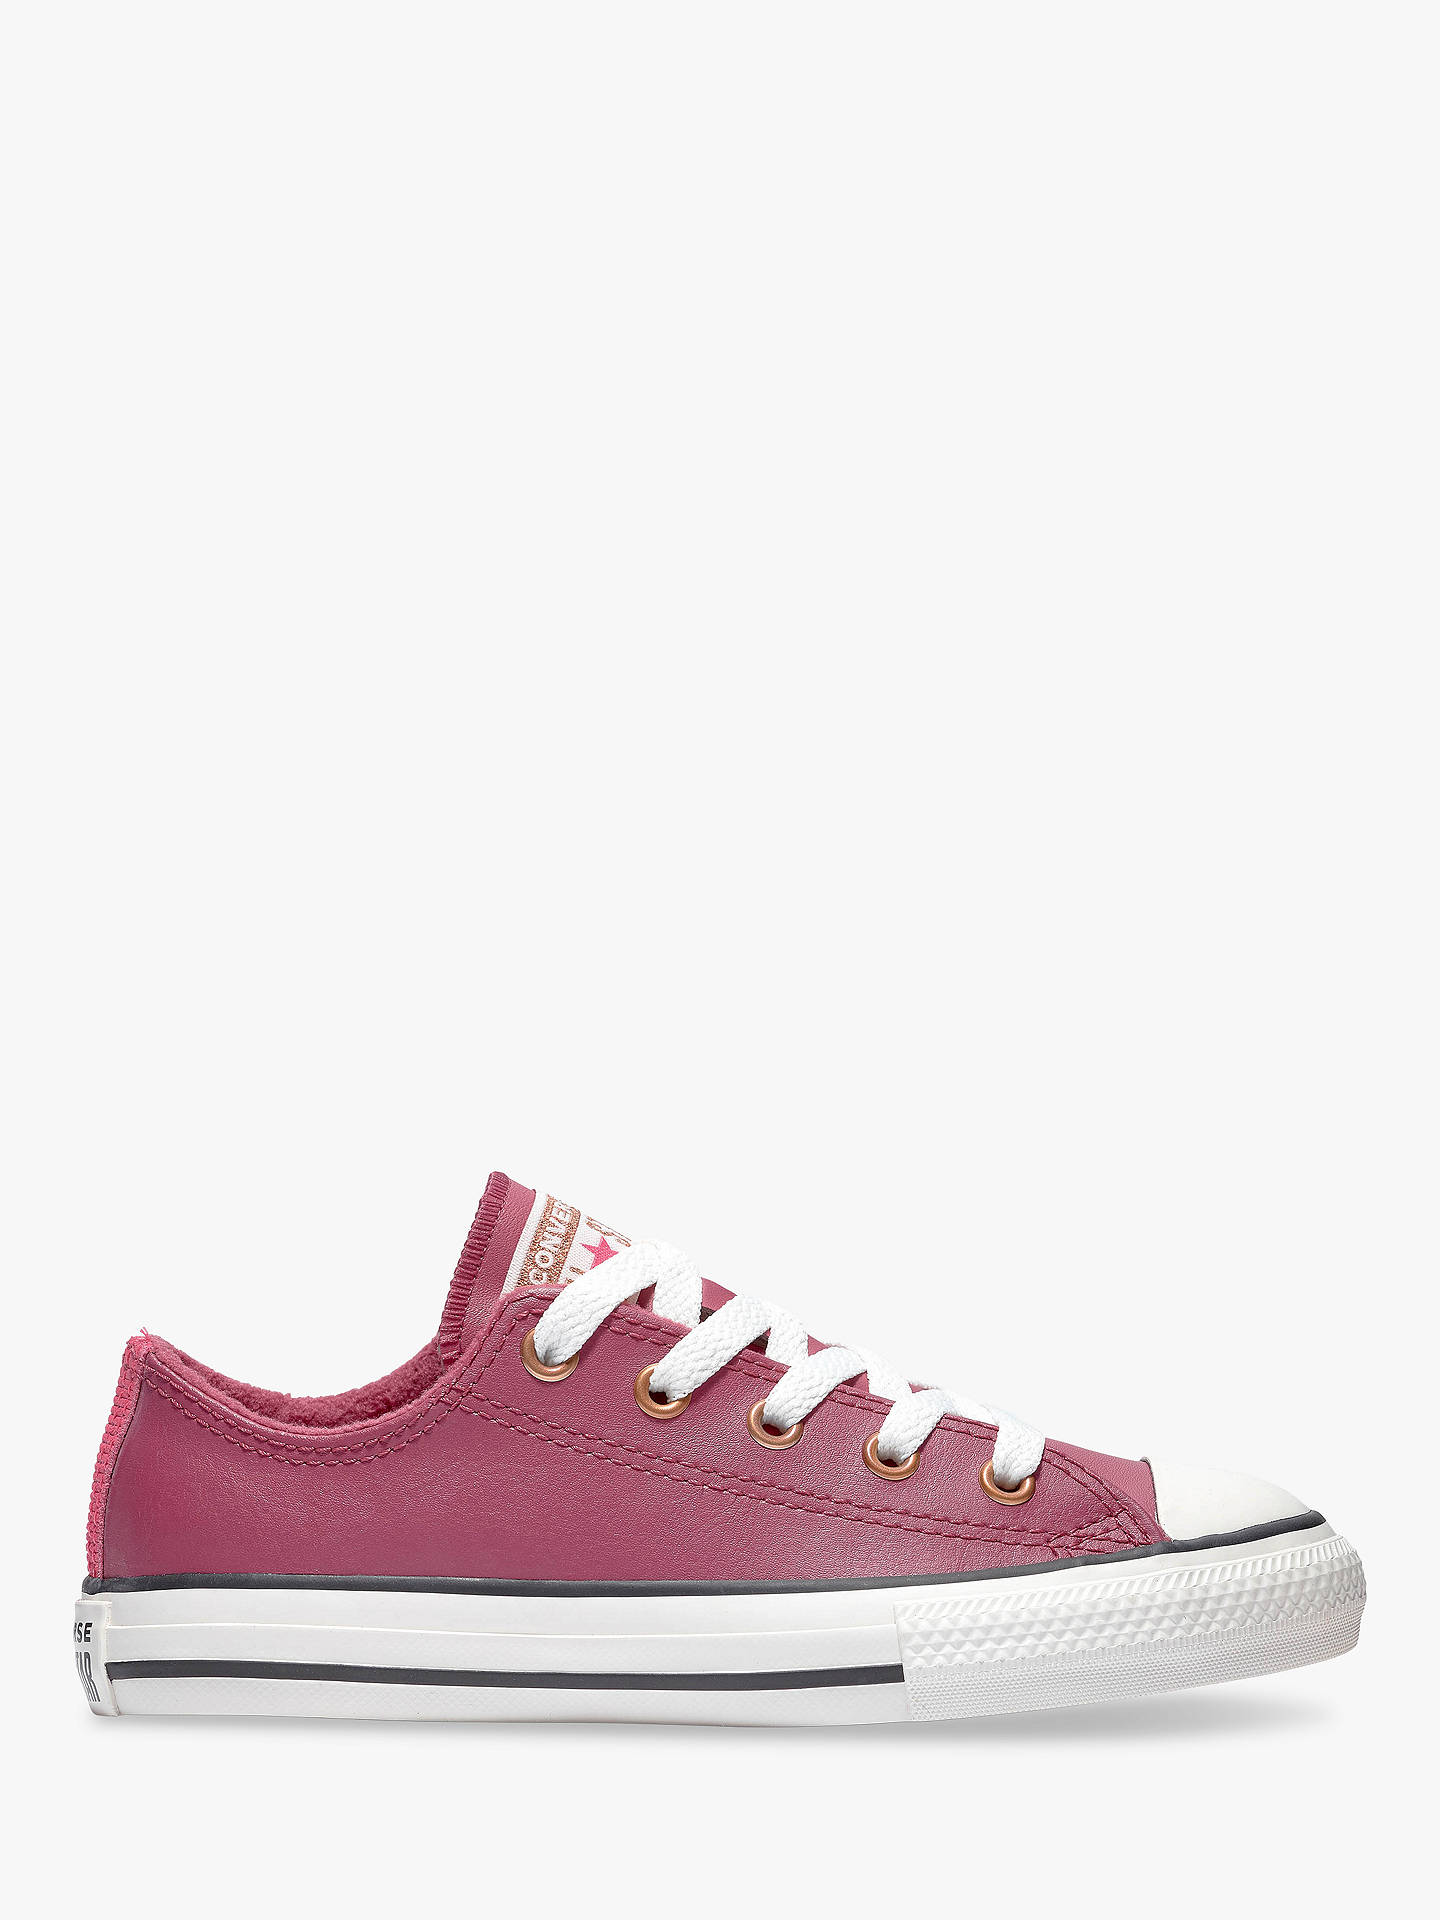 Converse Children's Chuck Taylor All Star Mission Warmth Ox